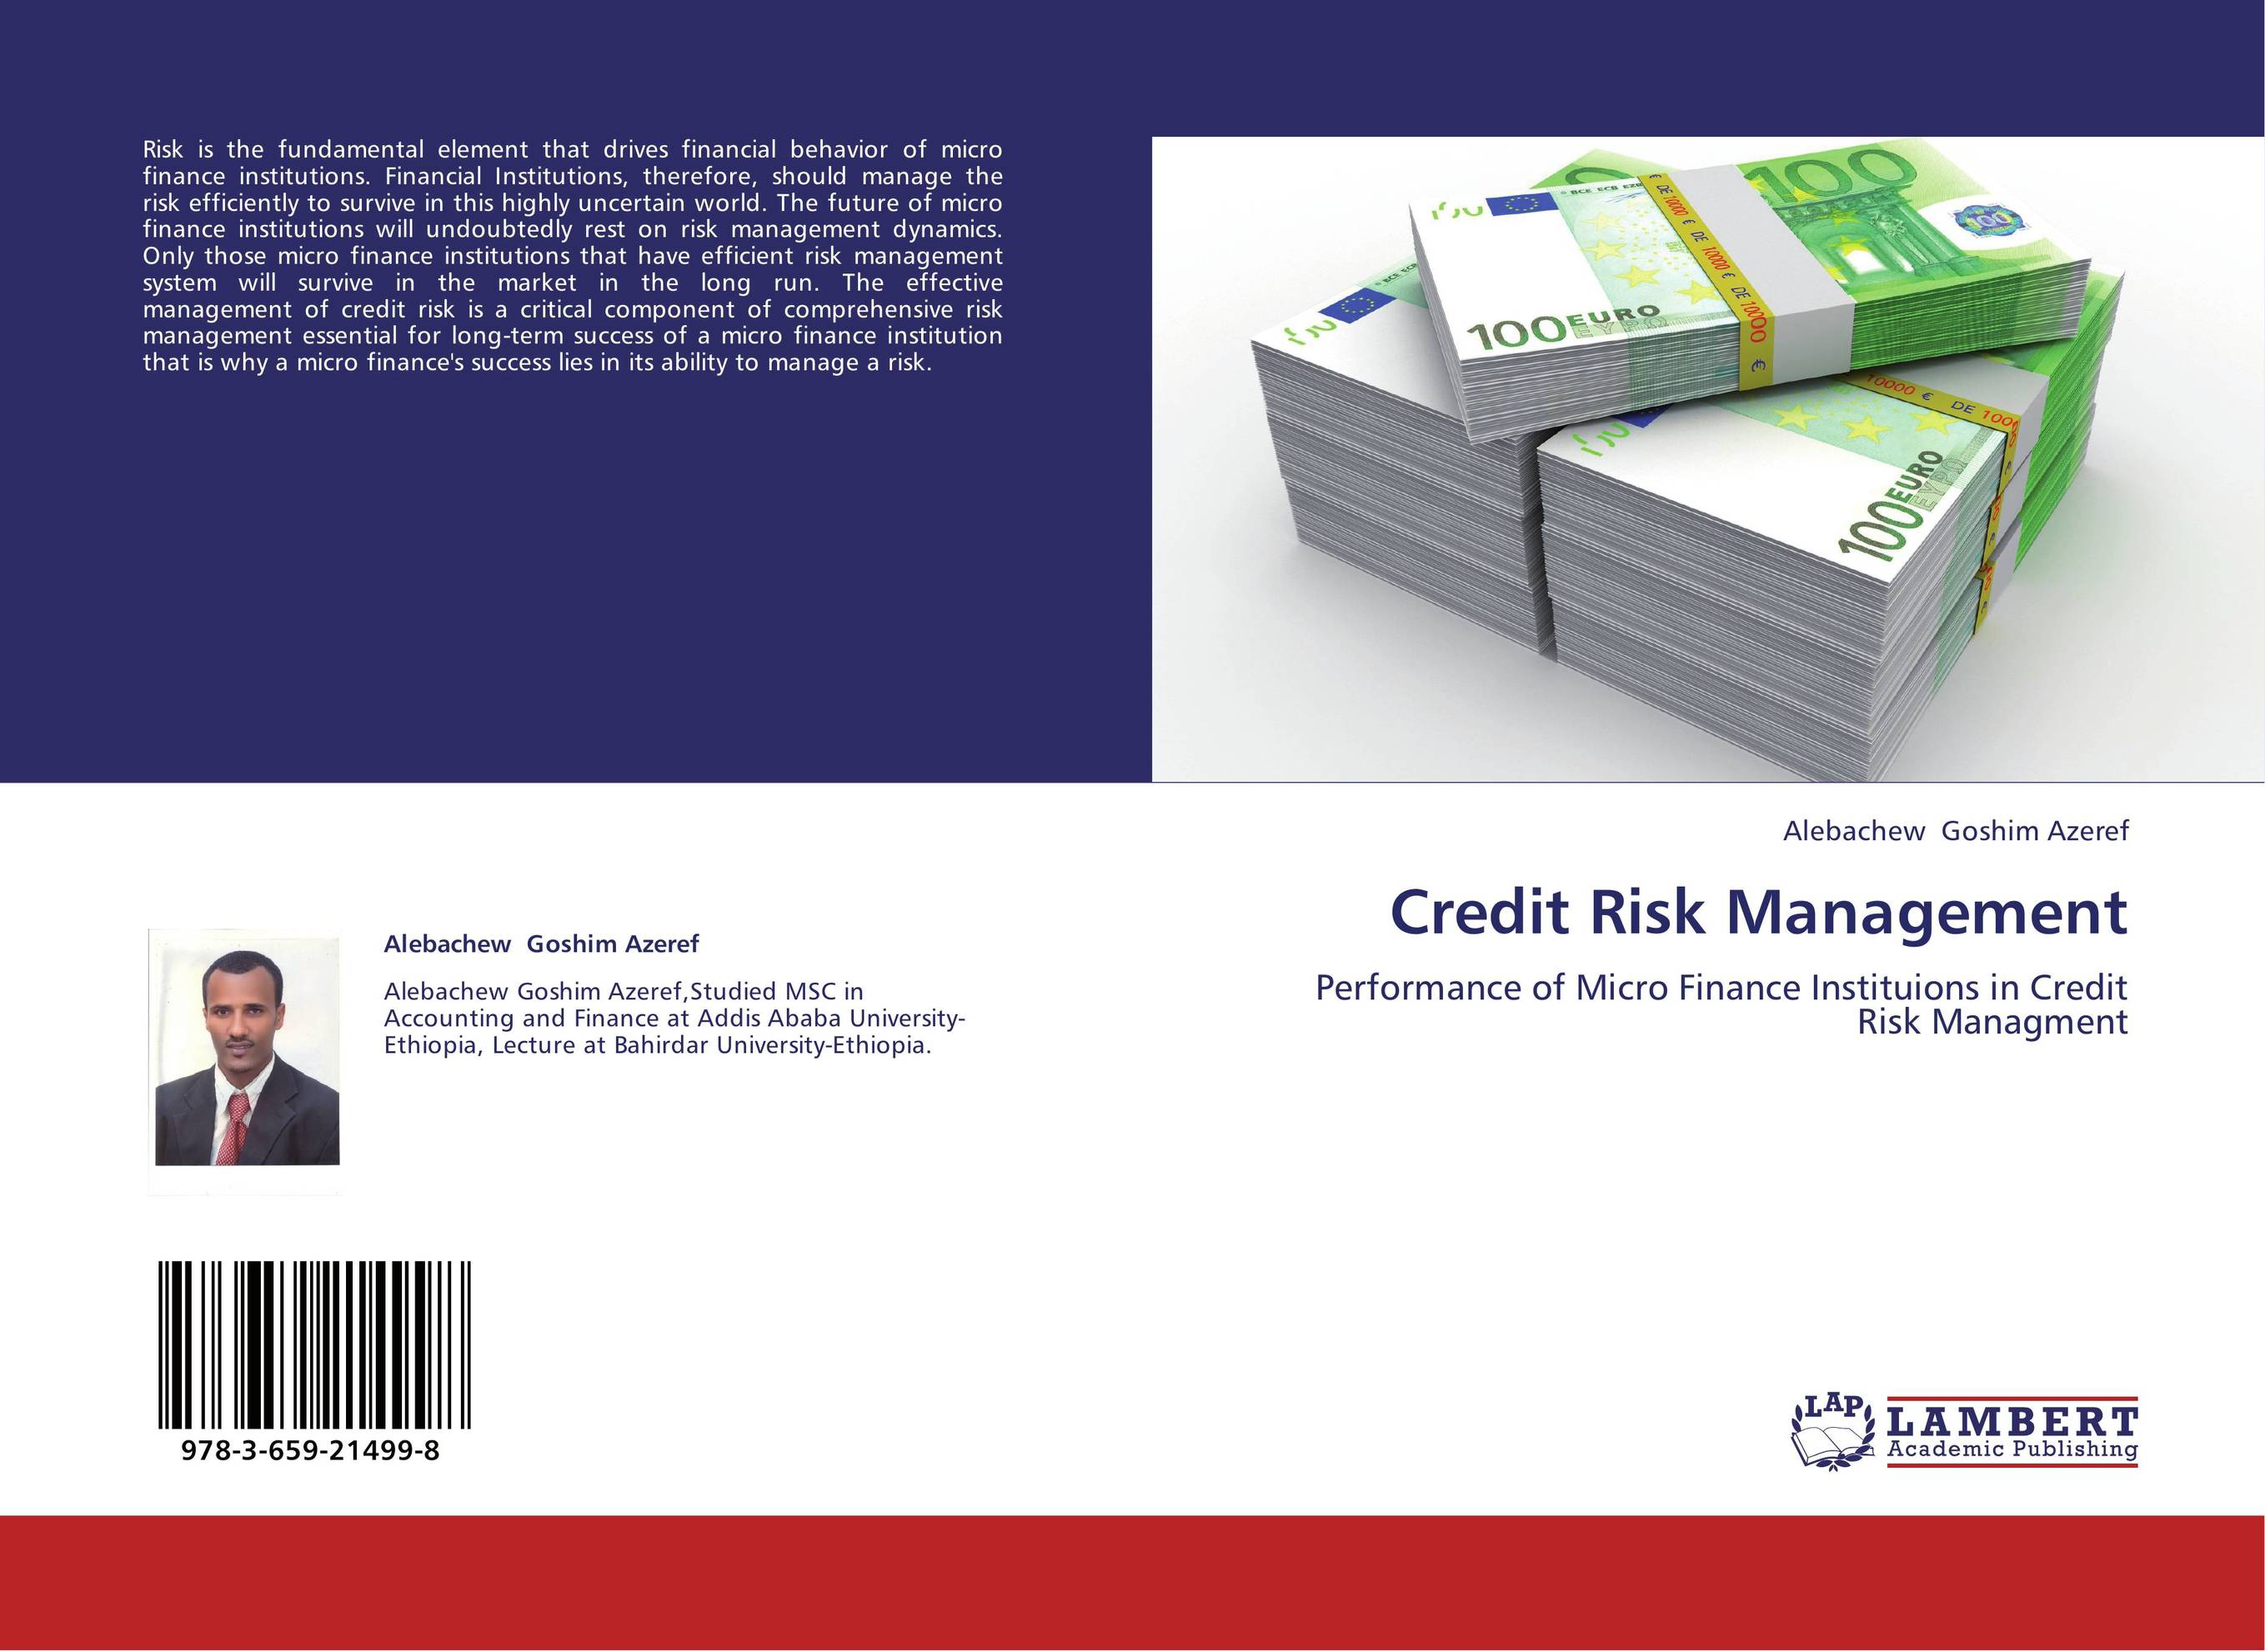 mba project in finance credit risk management in banks Especially suited for security analysts, investment brokers, project analysts and financial analysts, the mba in finance program combines exceptional mba training with a focused examination of topics such as short-term financial management, capital budgeting and portfolio management.